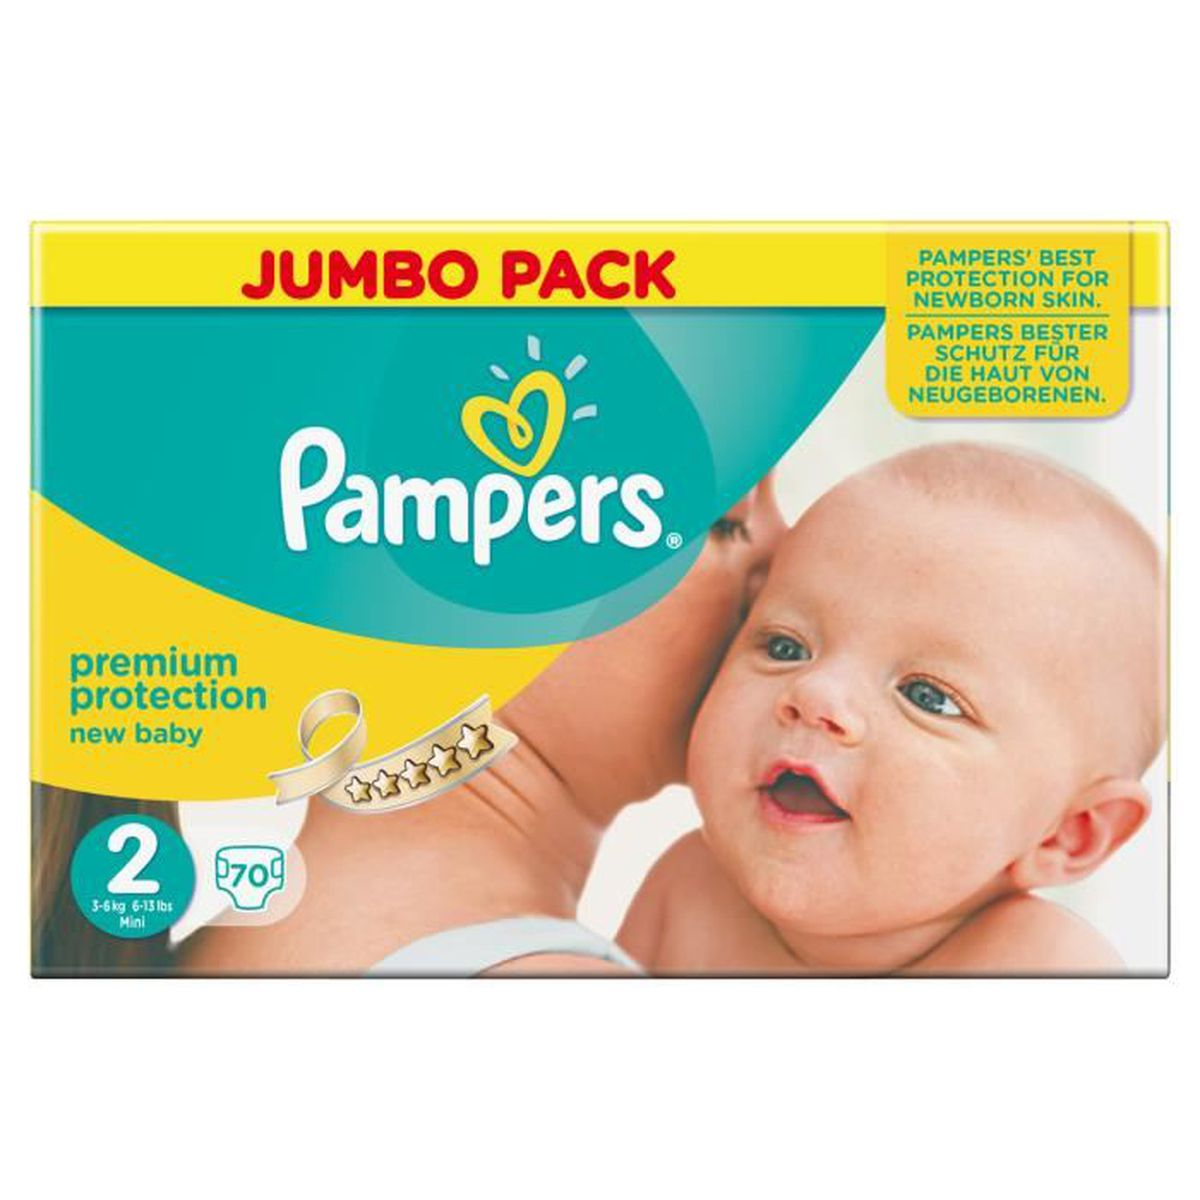 Promo couches pampers - Carrefour promotion couches pampers ...